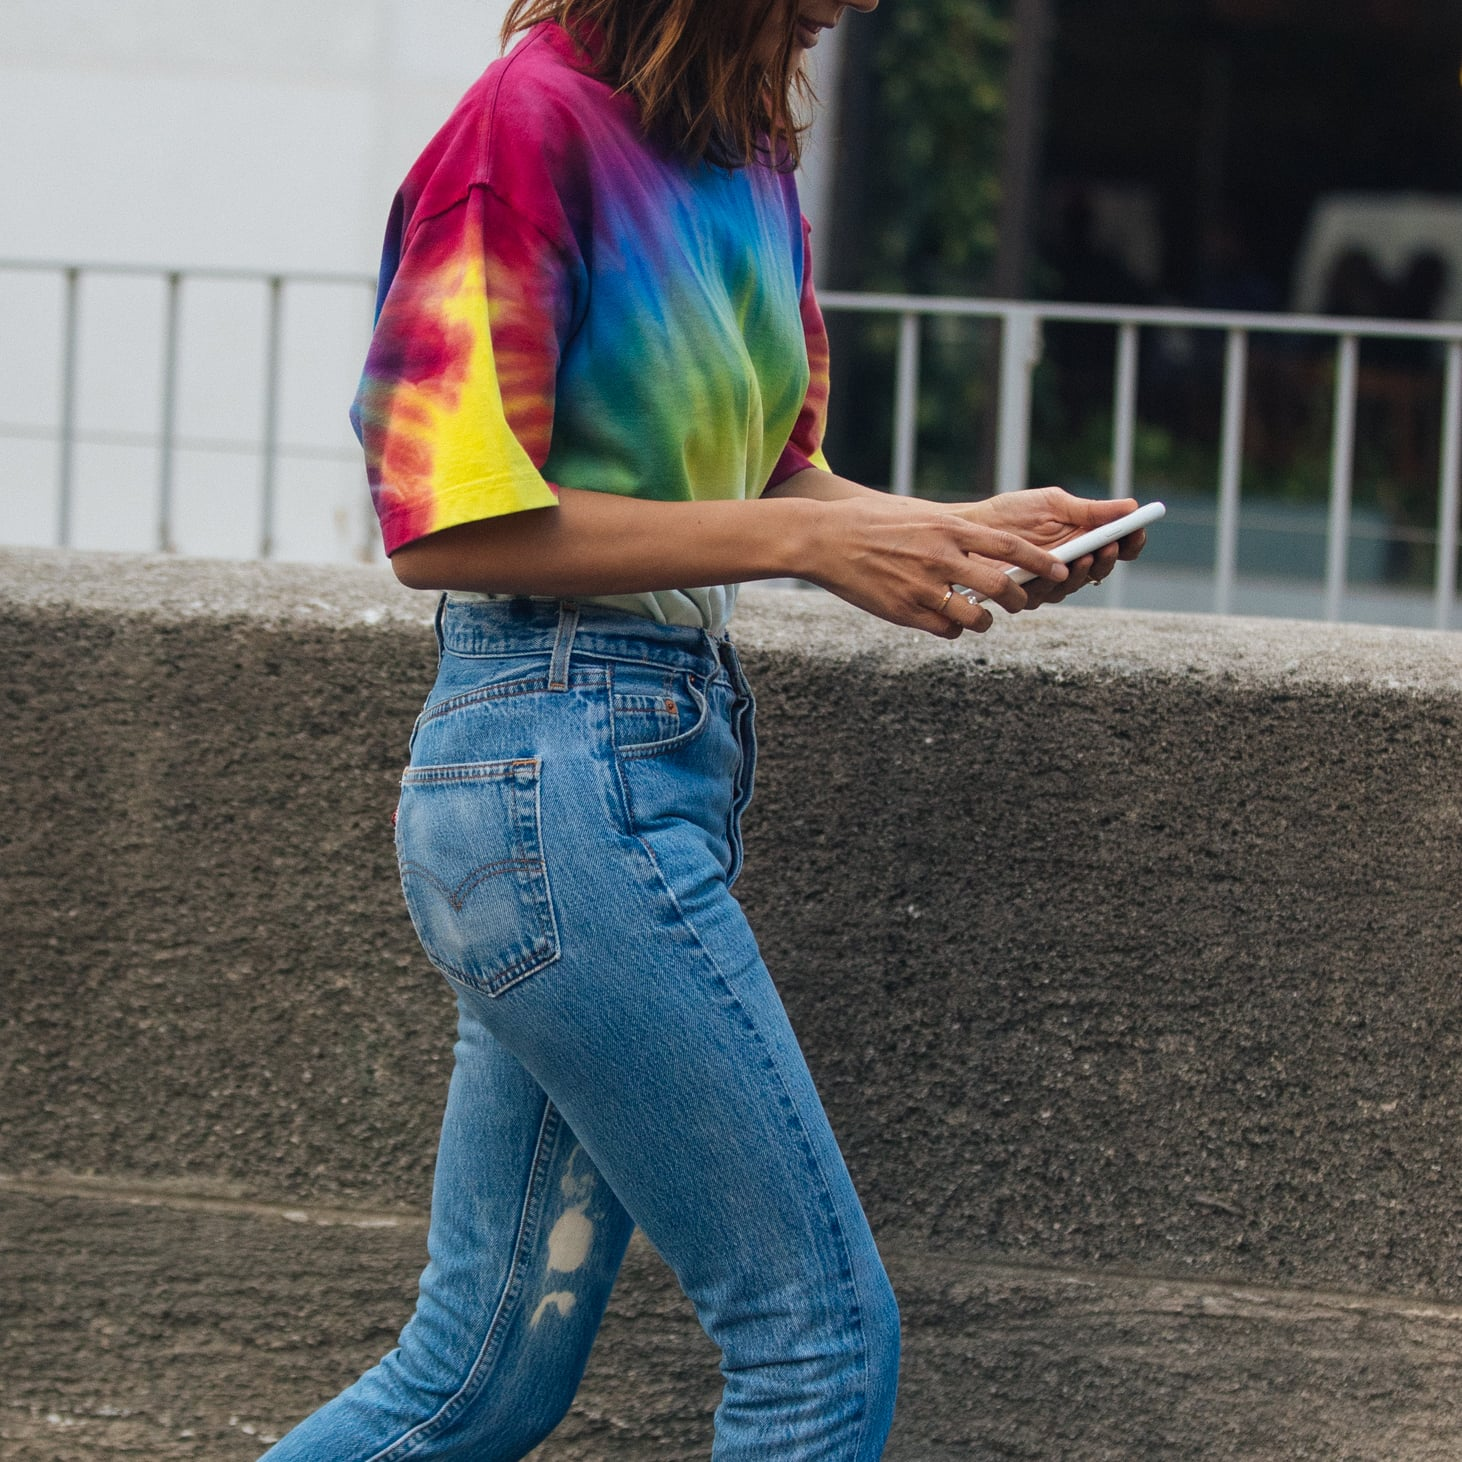 Best Tie-Dye Clothing For Women at Old Navy  POPSUGAR Fashion